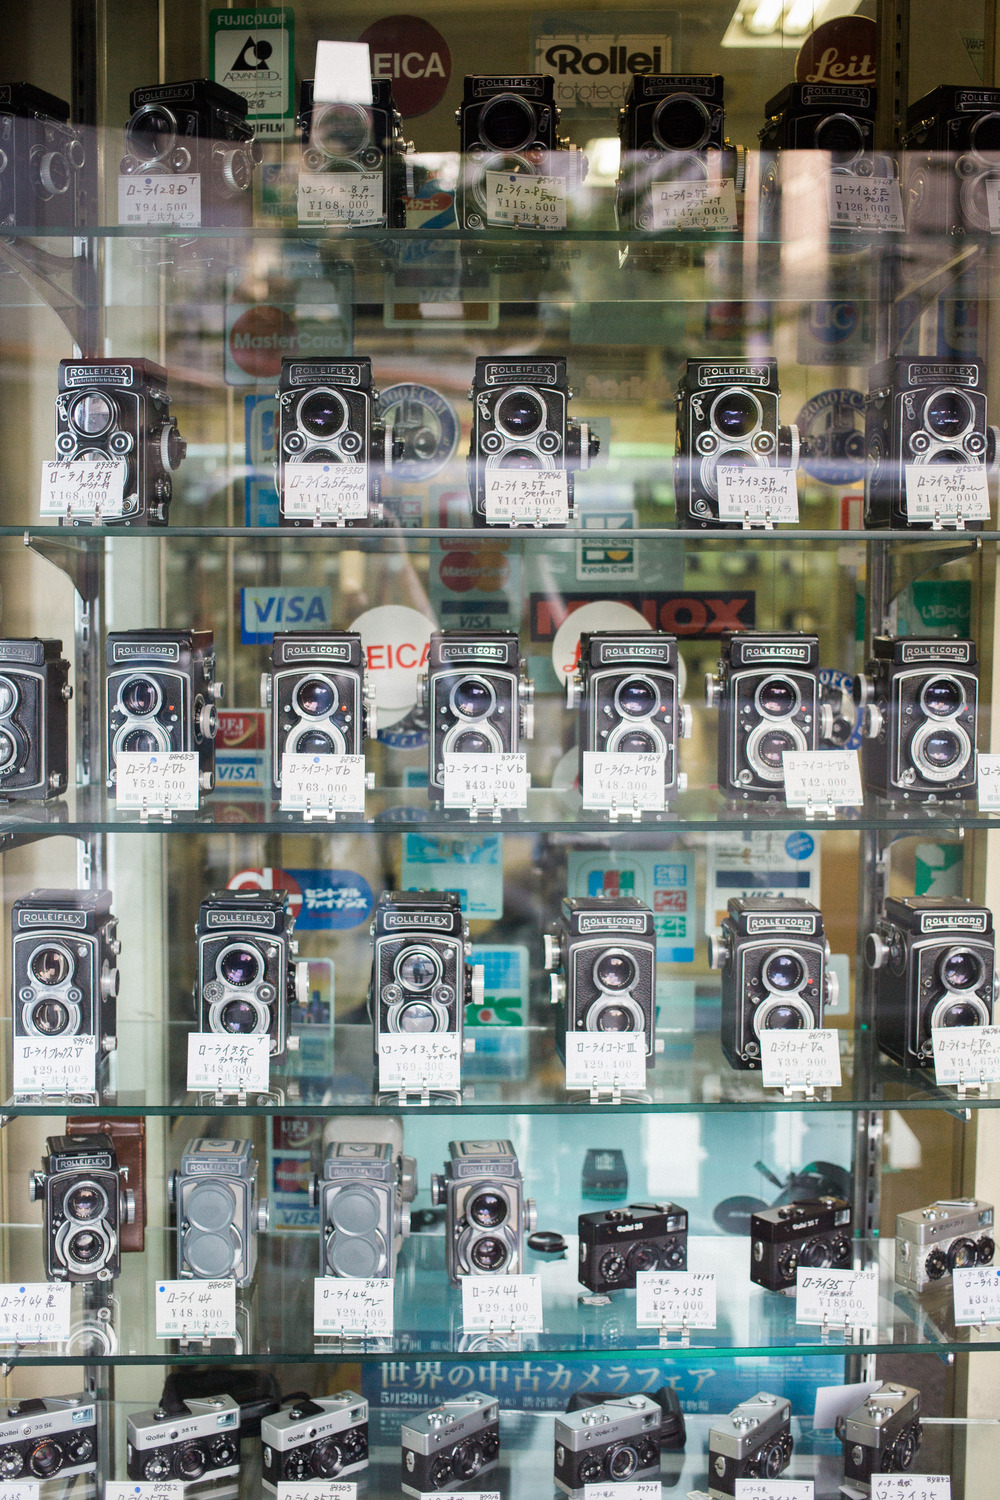 Window full of Rolleiflex cameras